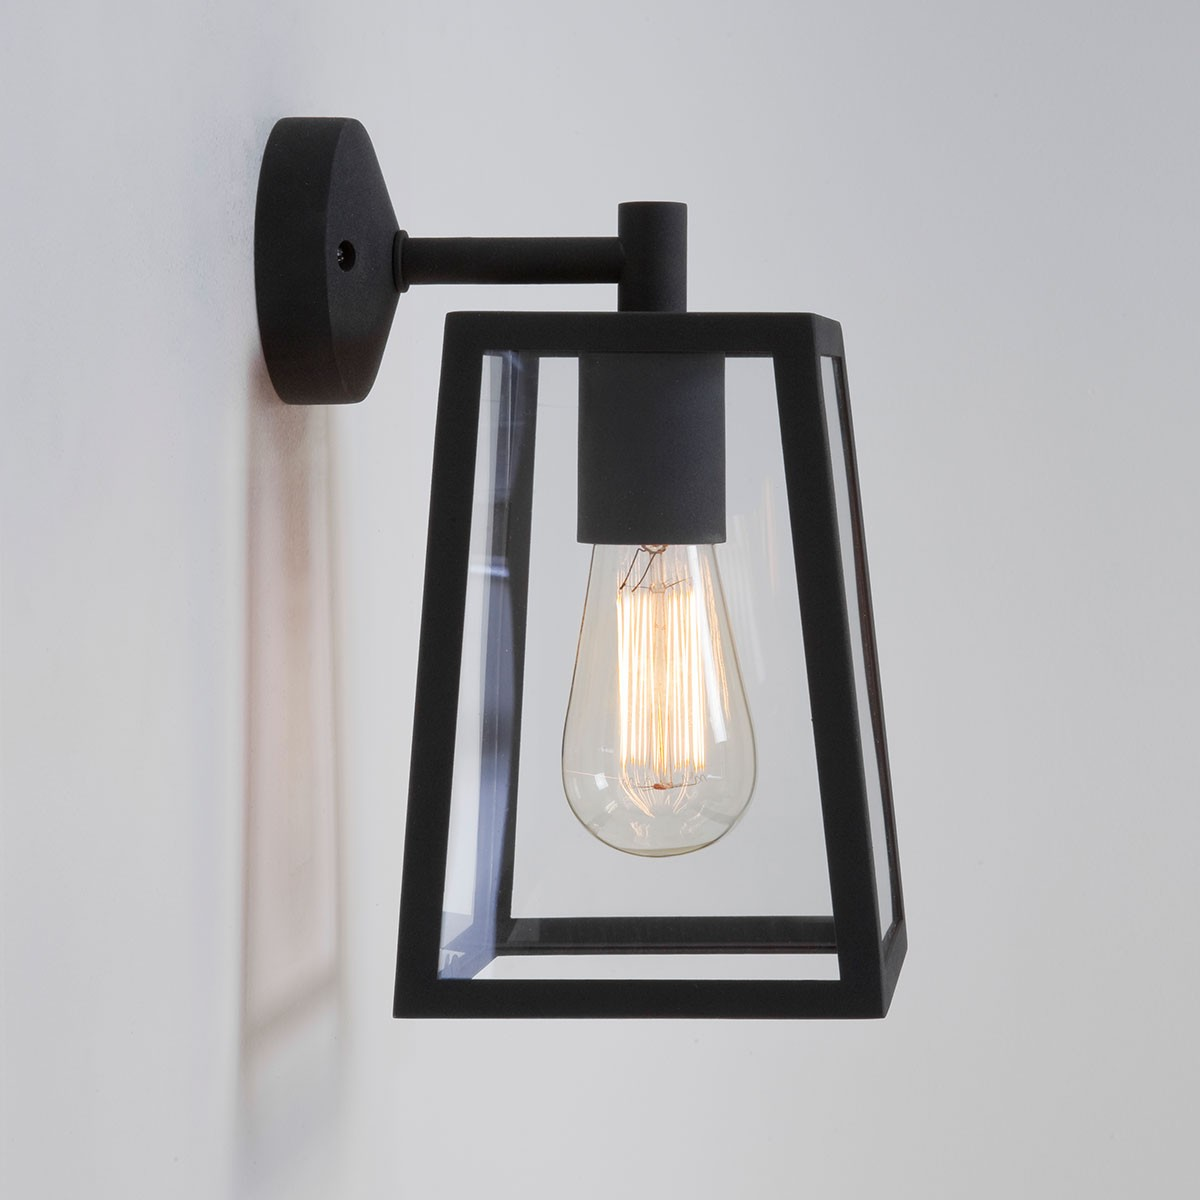 in garden southbank wall lighting down polymer concrete light trading lights outdoor image